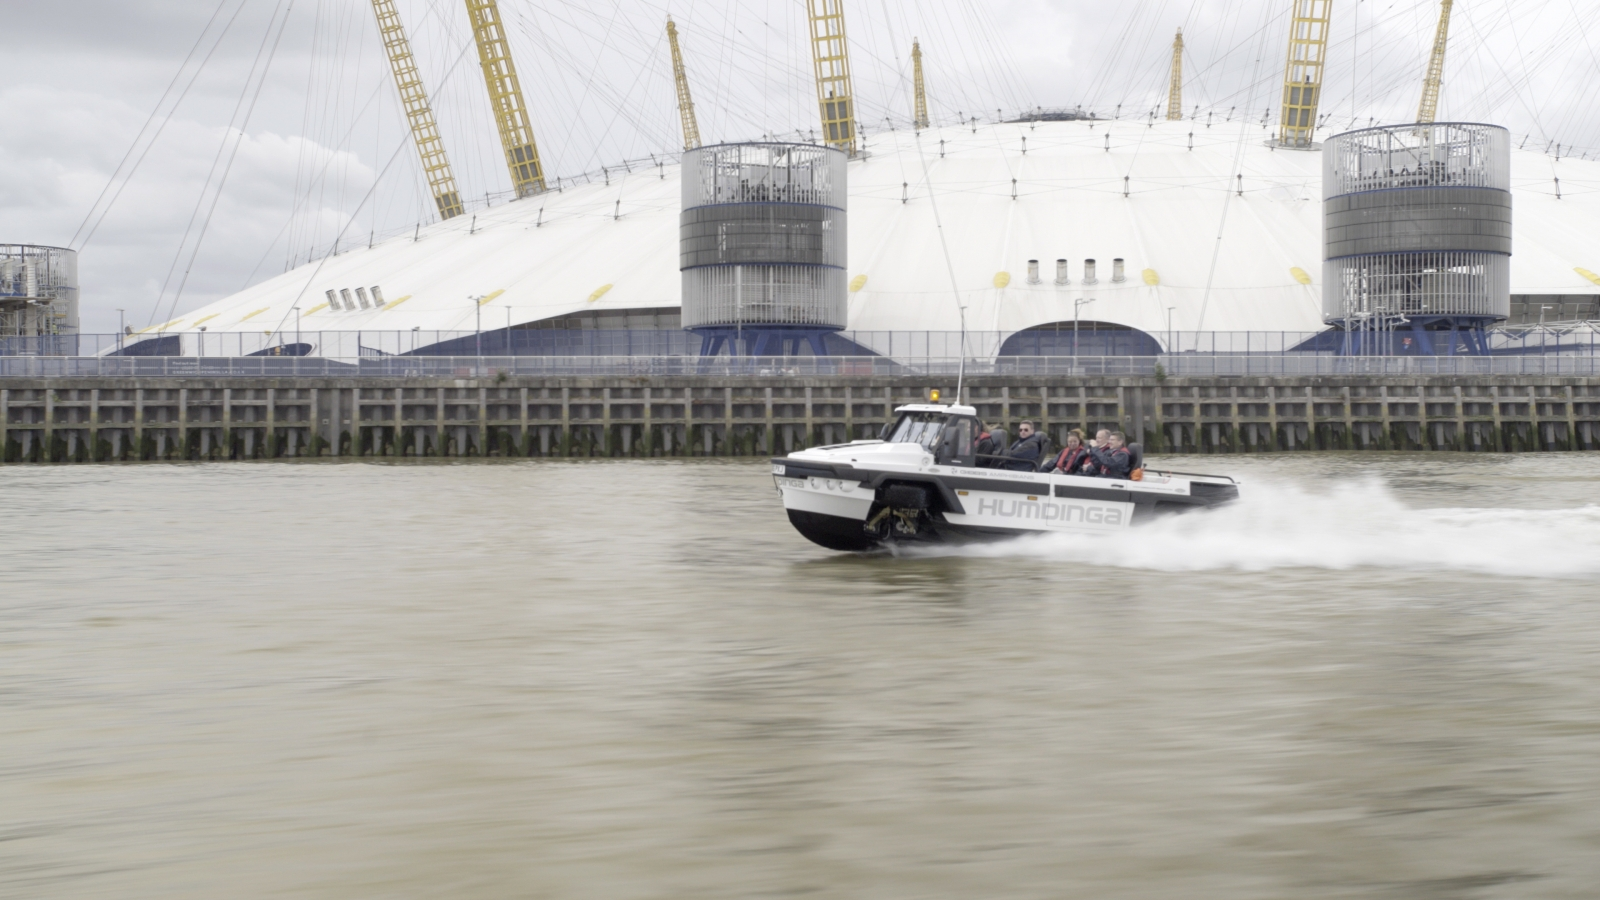 World's first amphibious taxi London